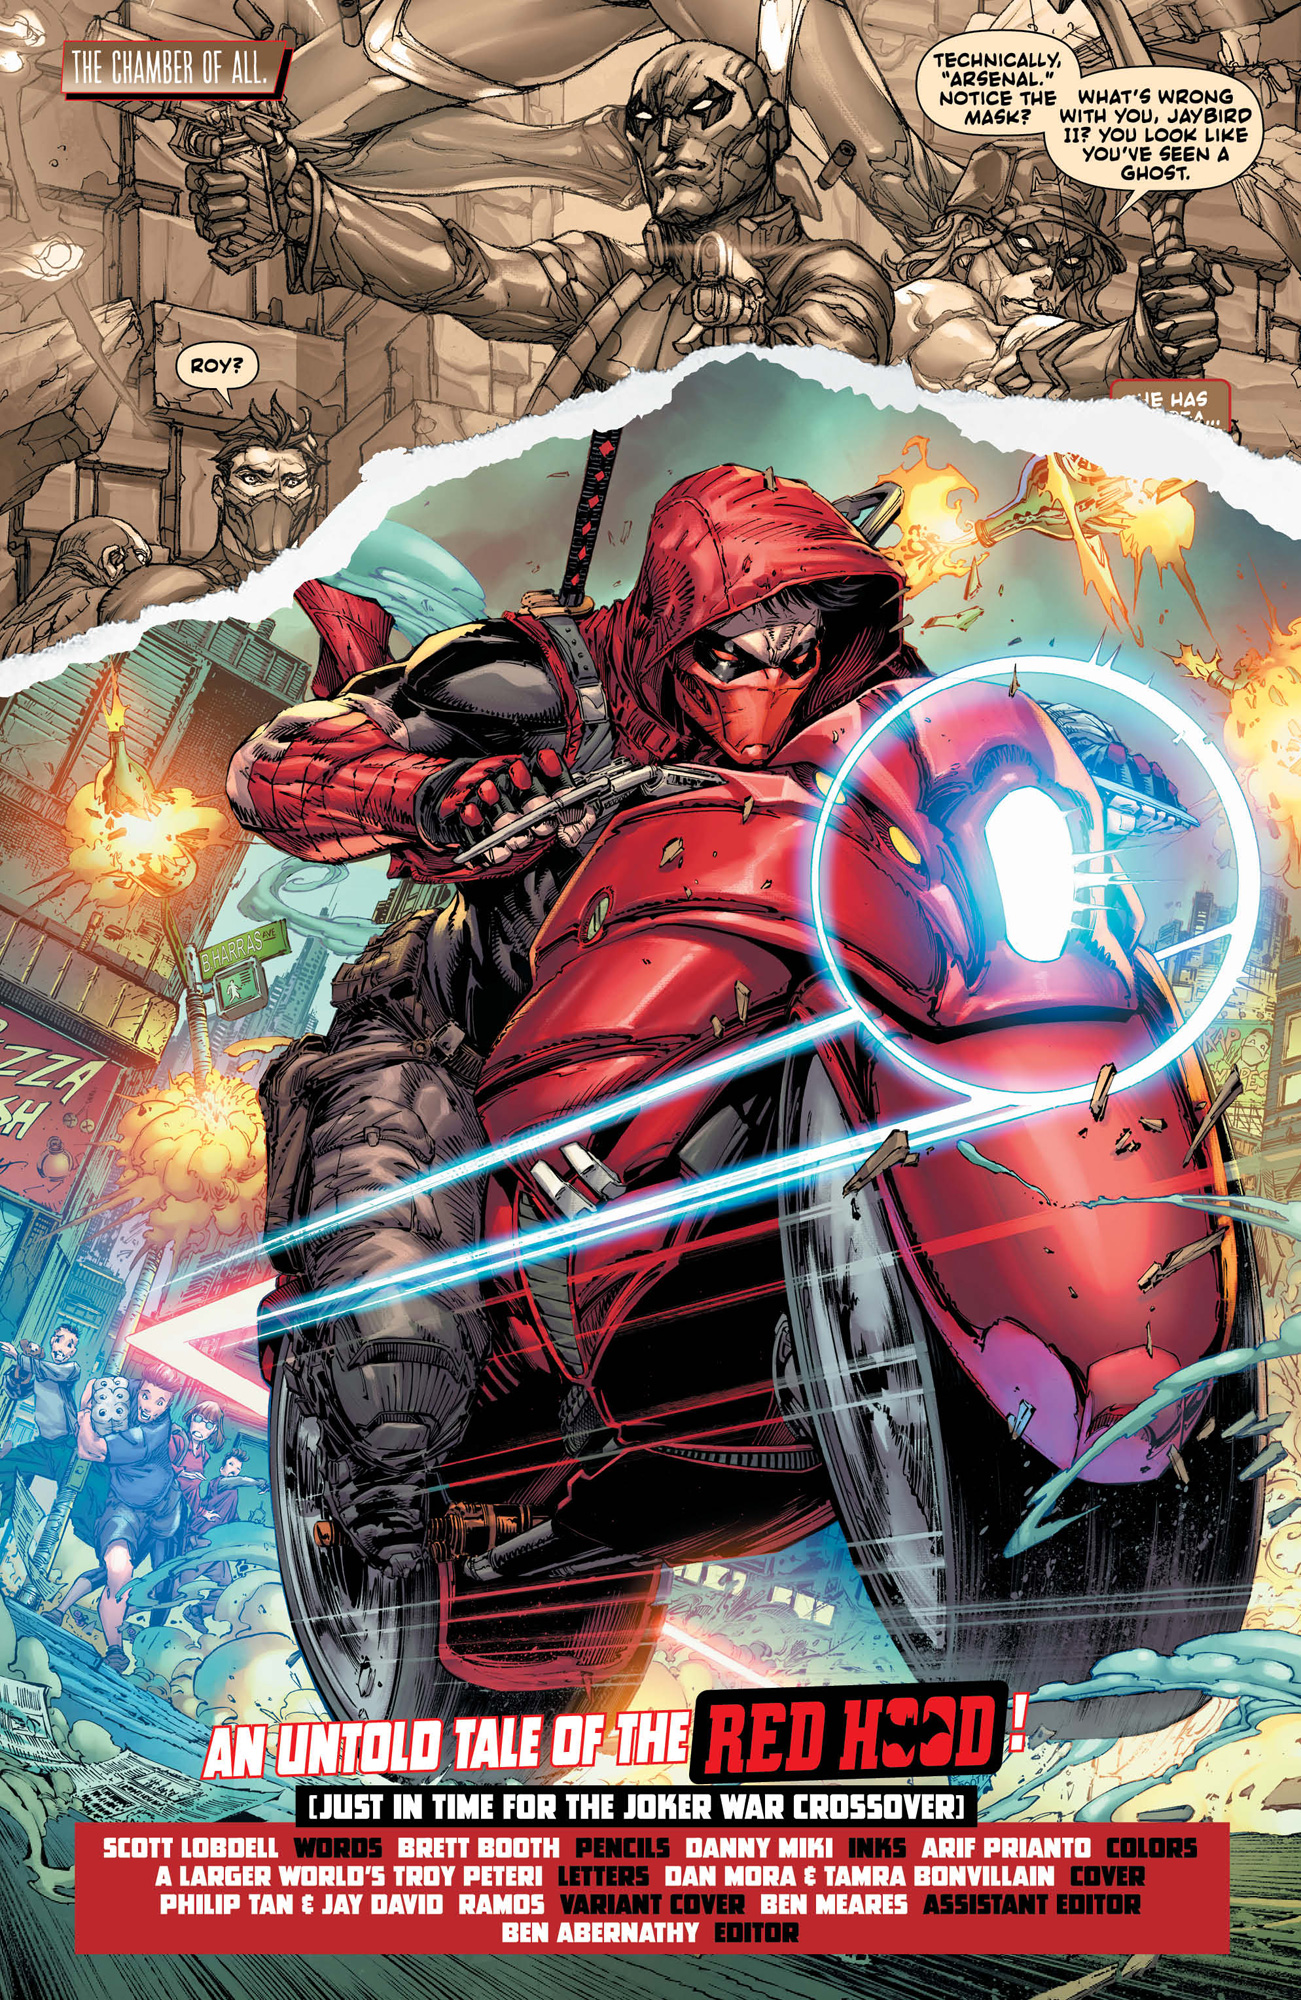 Red Hood Outlaw 48 4 Page Preview And Covers Released By Dc Comics